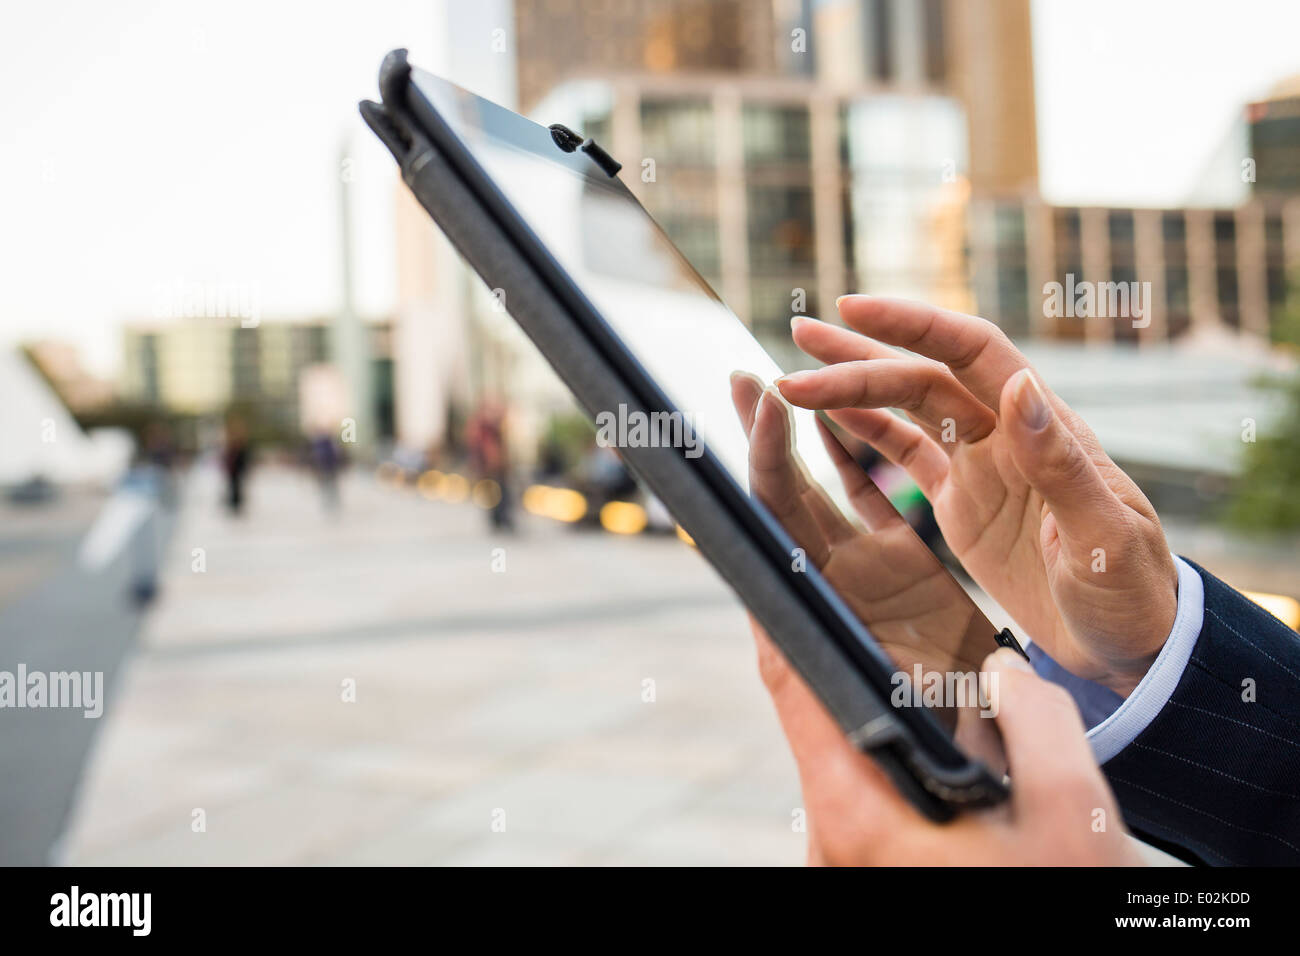 Weibliche Digital-Tablette Hand Outdoor-Gebäude Stockbild